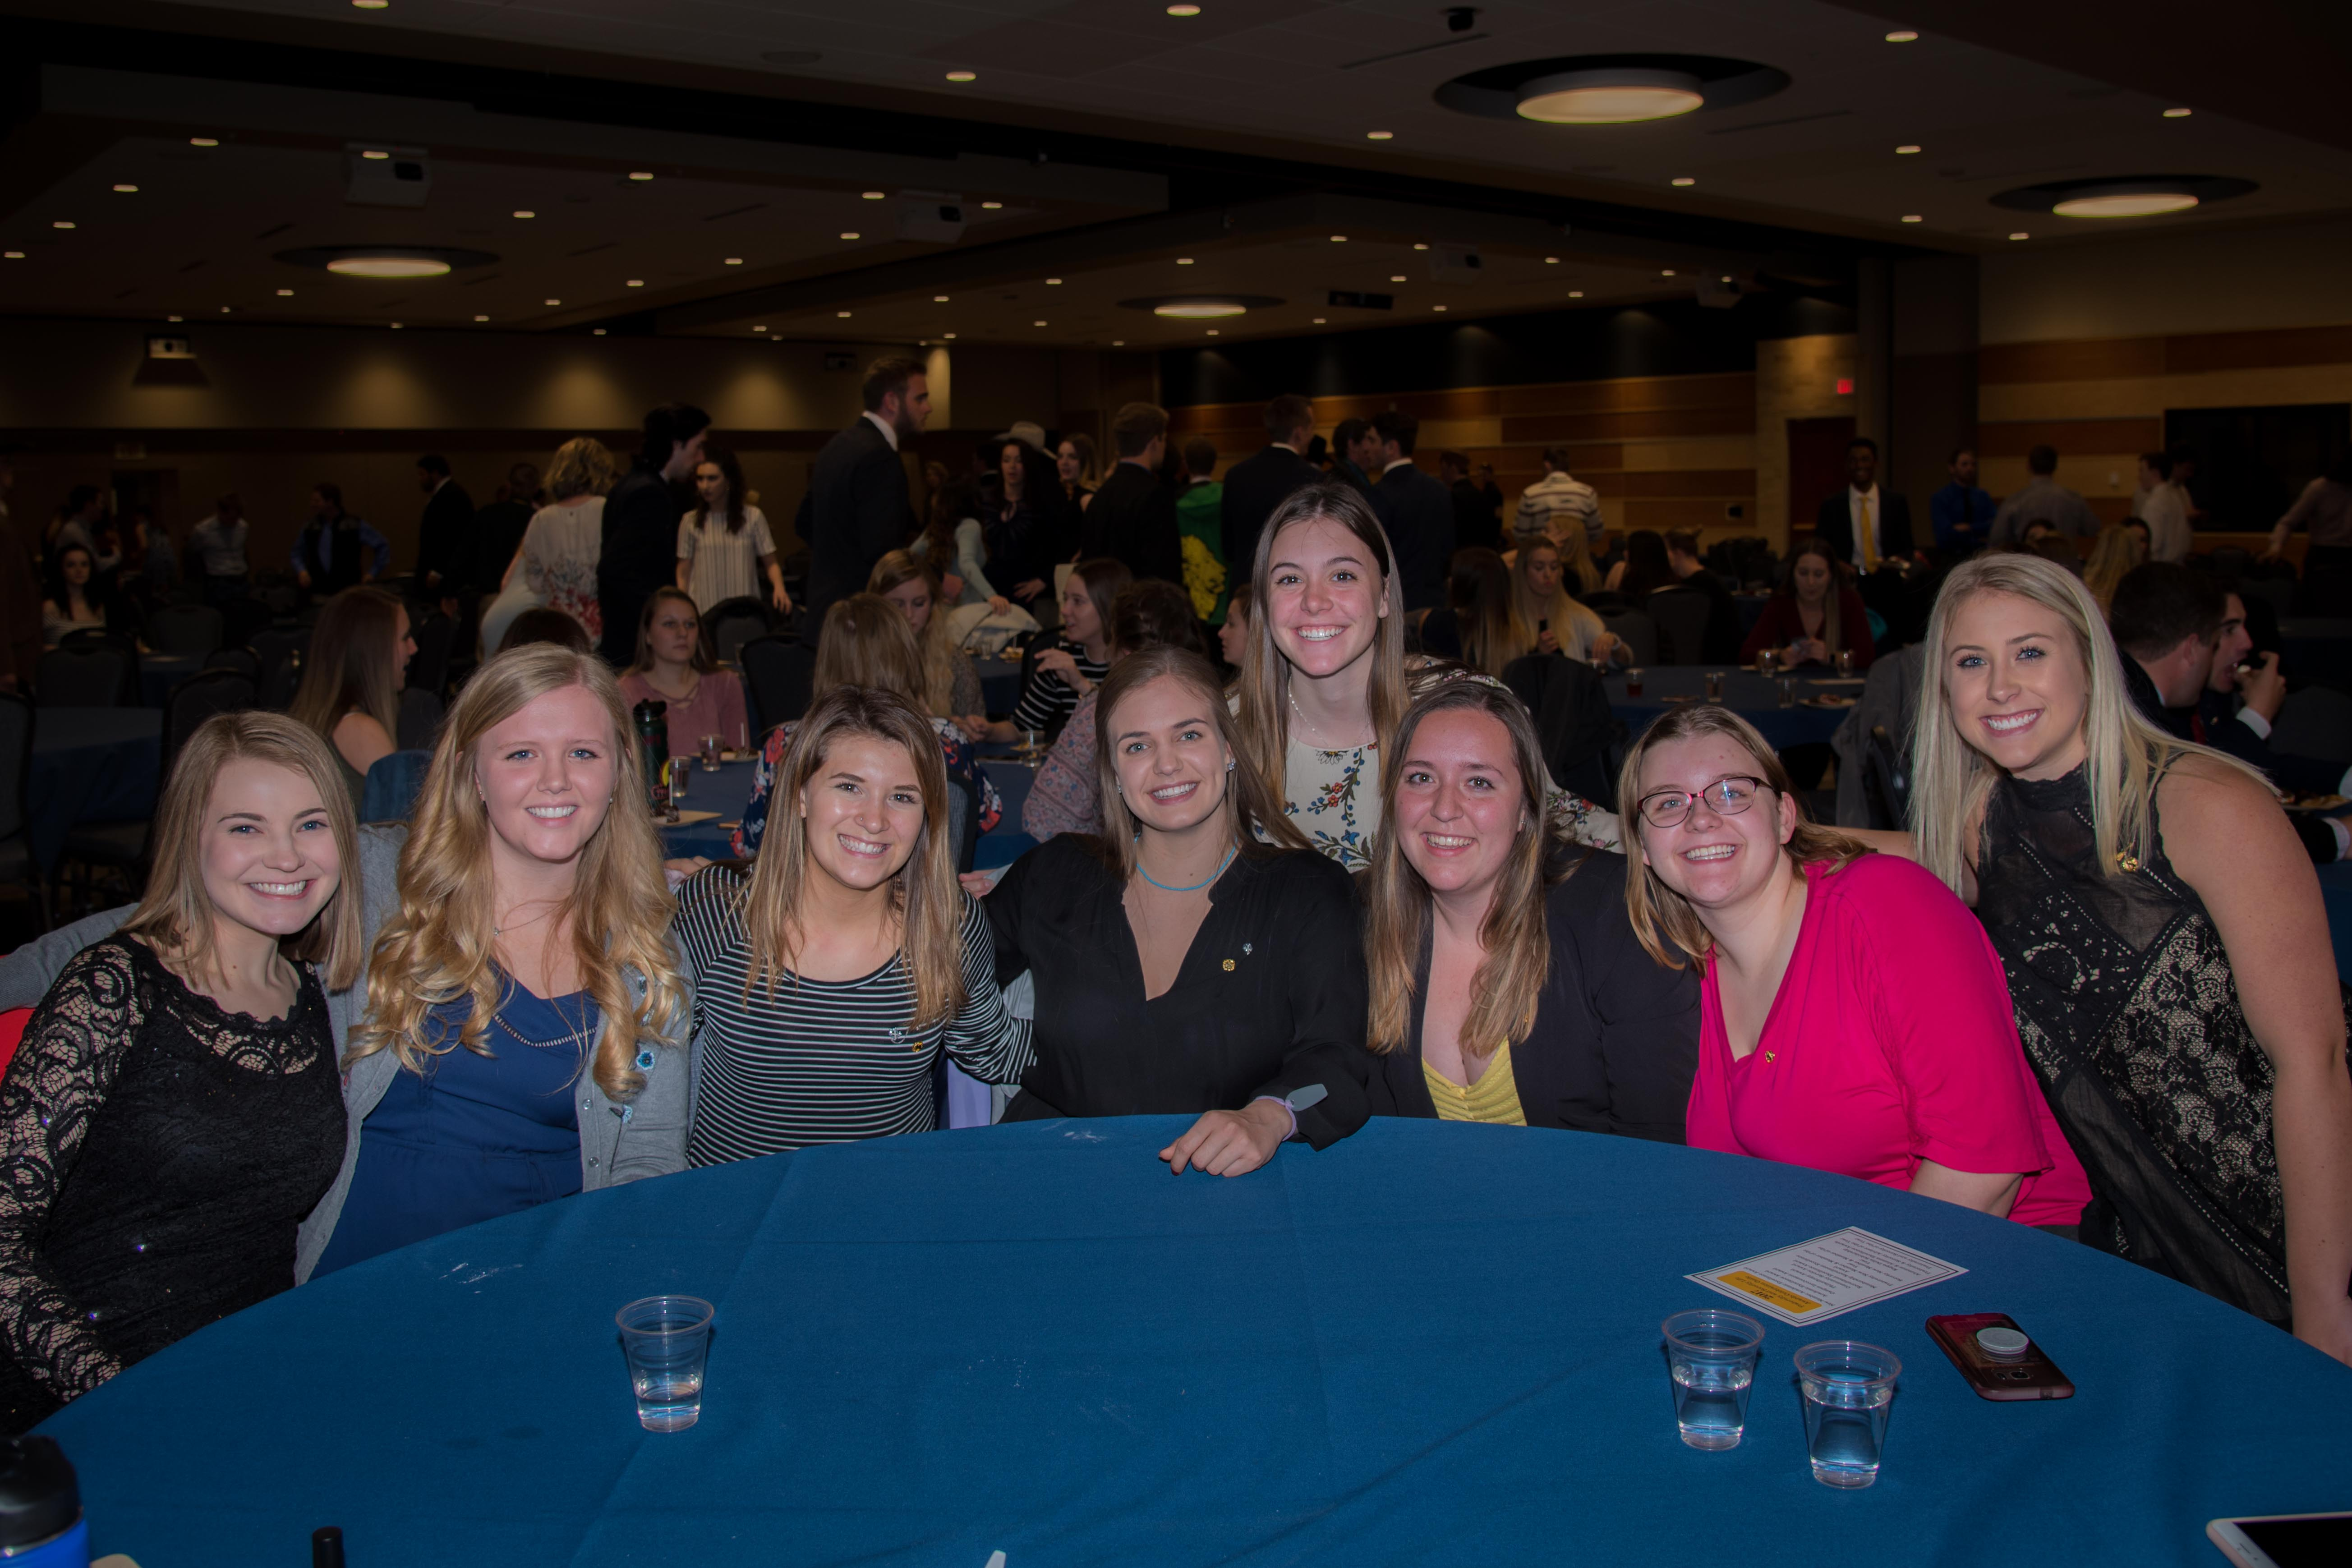 Panhellenic Group